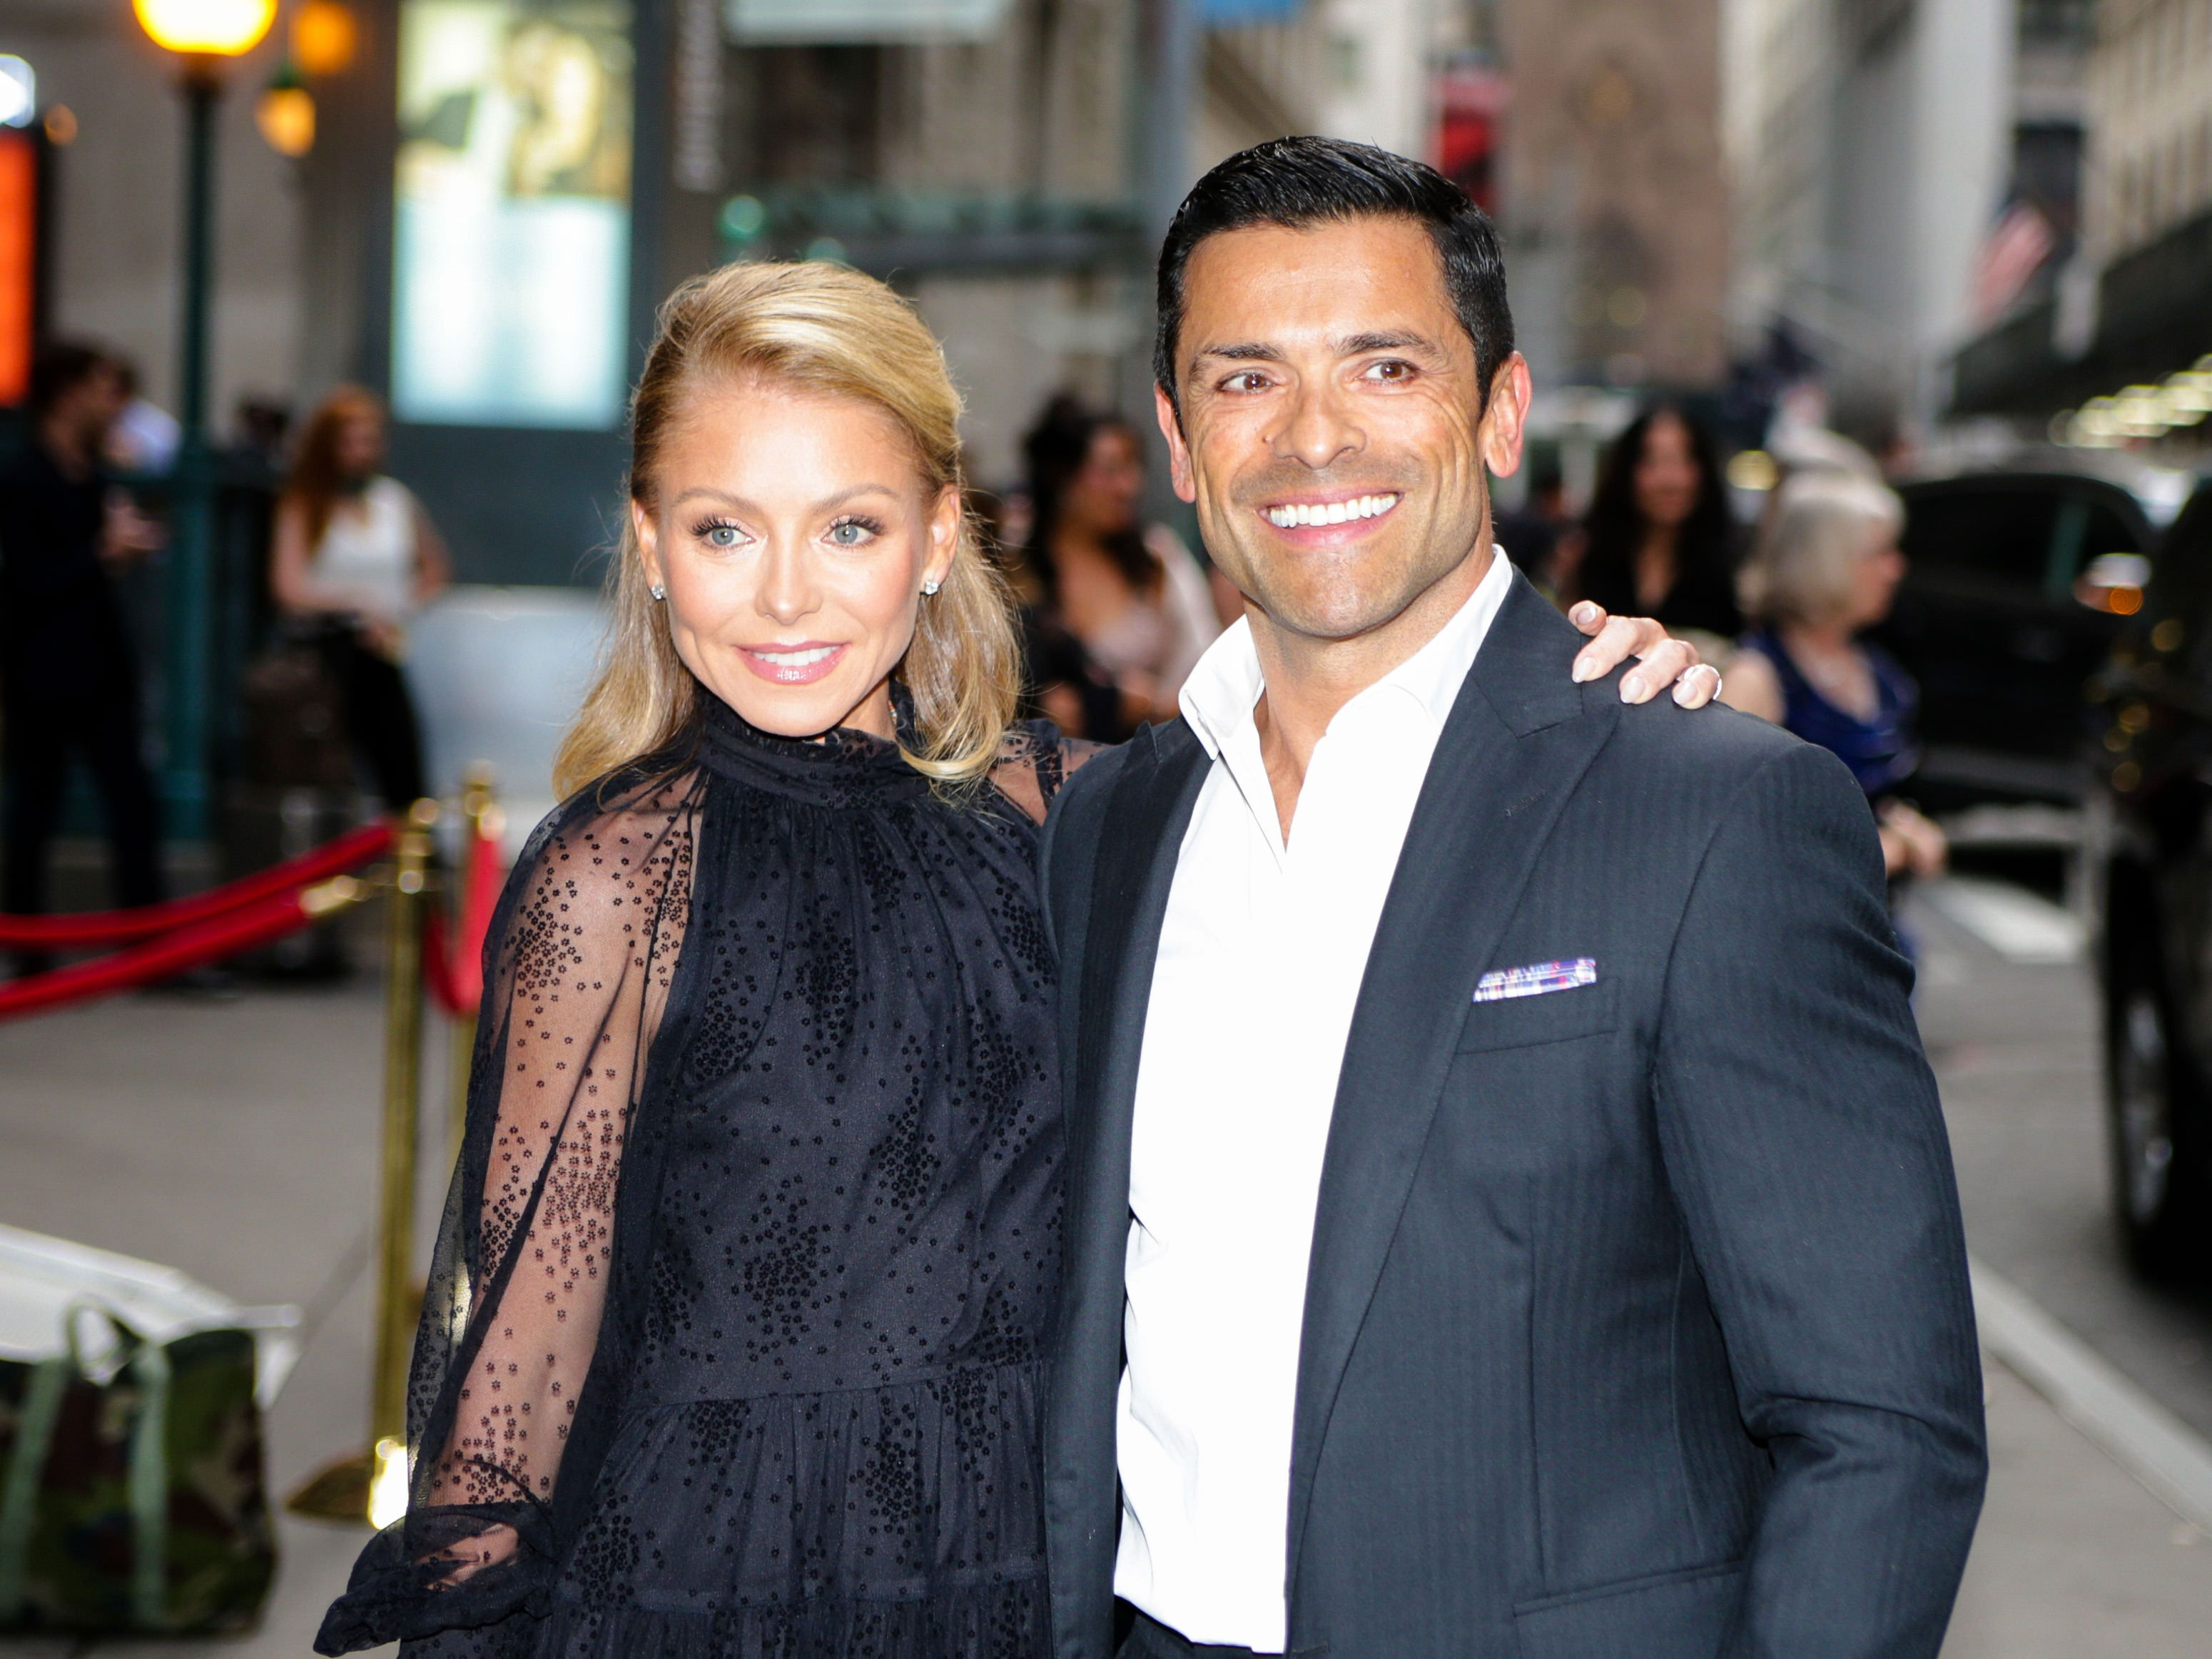 Kelly Ripa Just Joked About What *Really* Gets Her Off After Being 'Married 800 Years' To Mark Consuelos